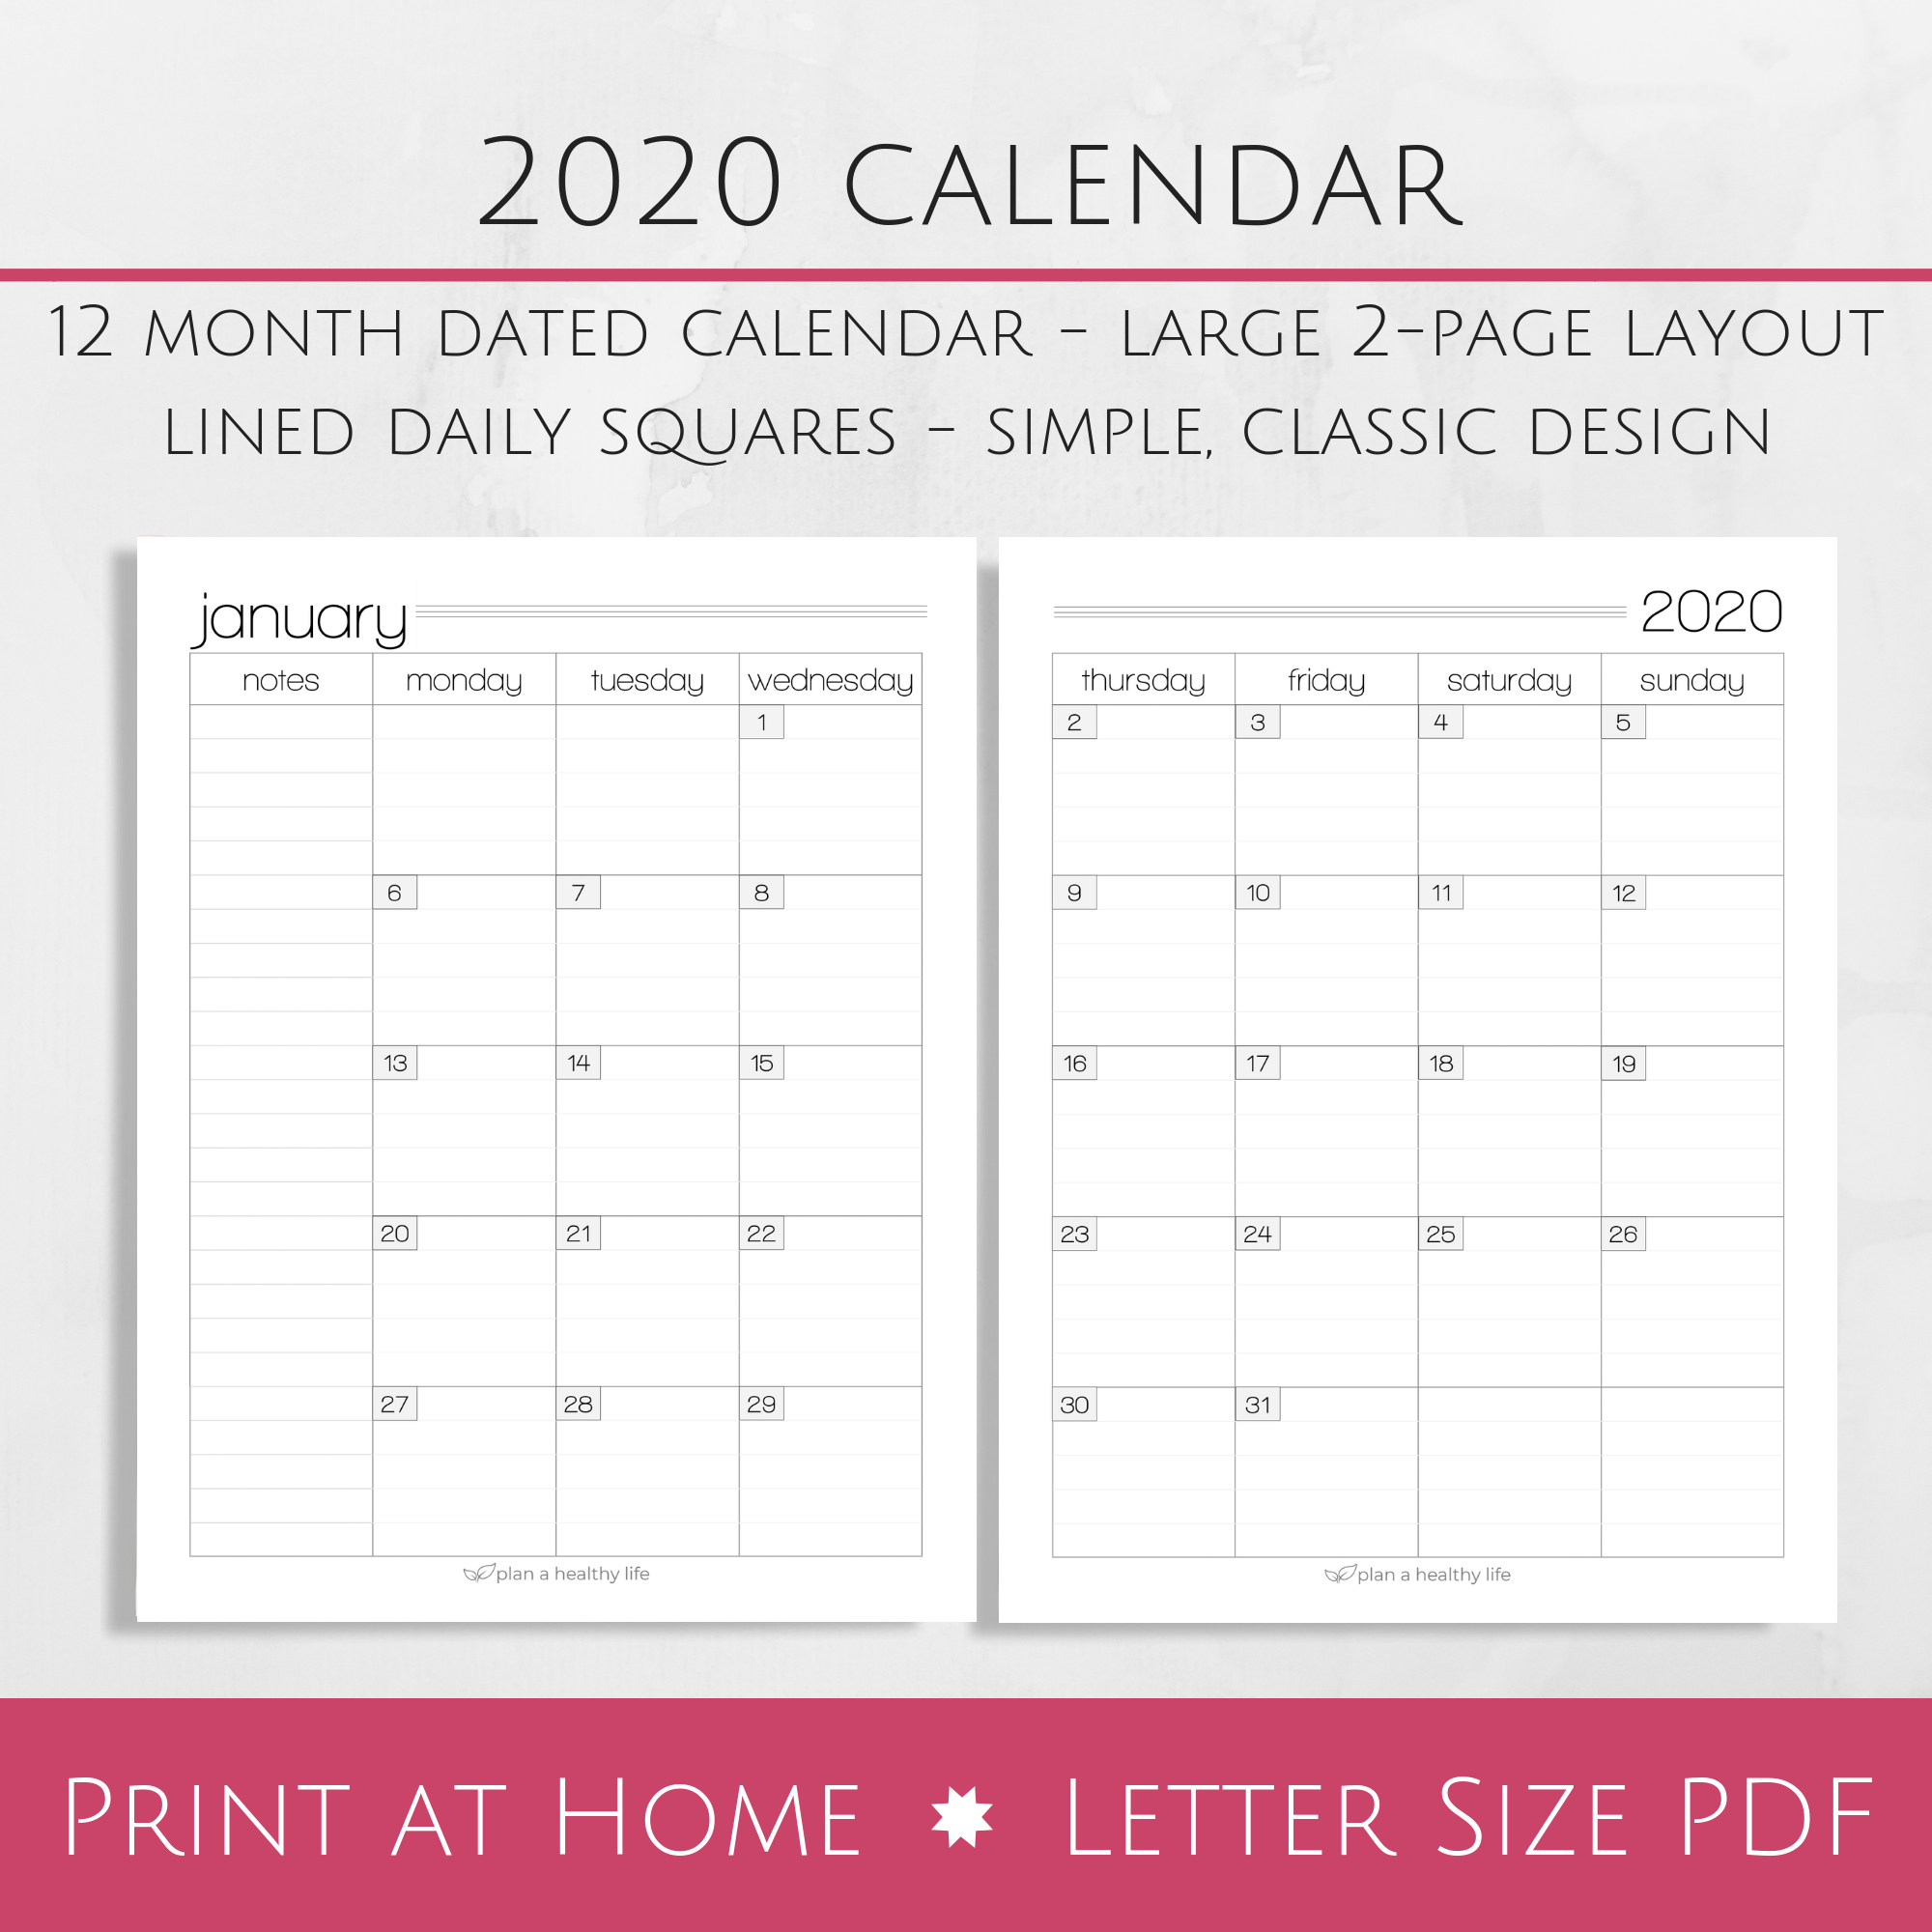 Printable 2020 Monthly Calendar - Large 2-Page Layout — Plan A Healthy Life inside Printable 8.5 X 11 2020 Calendar